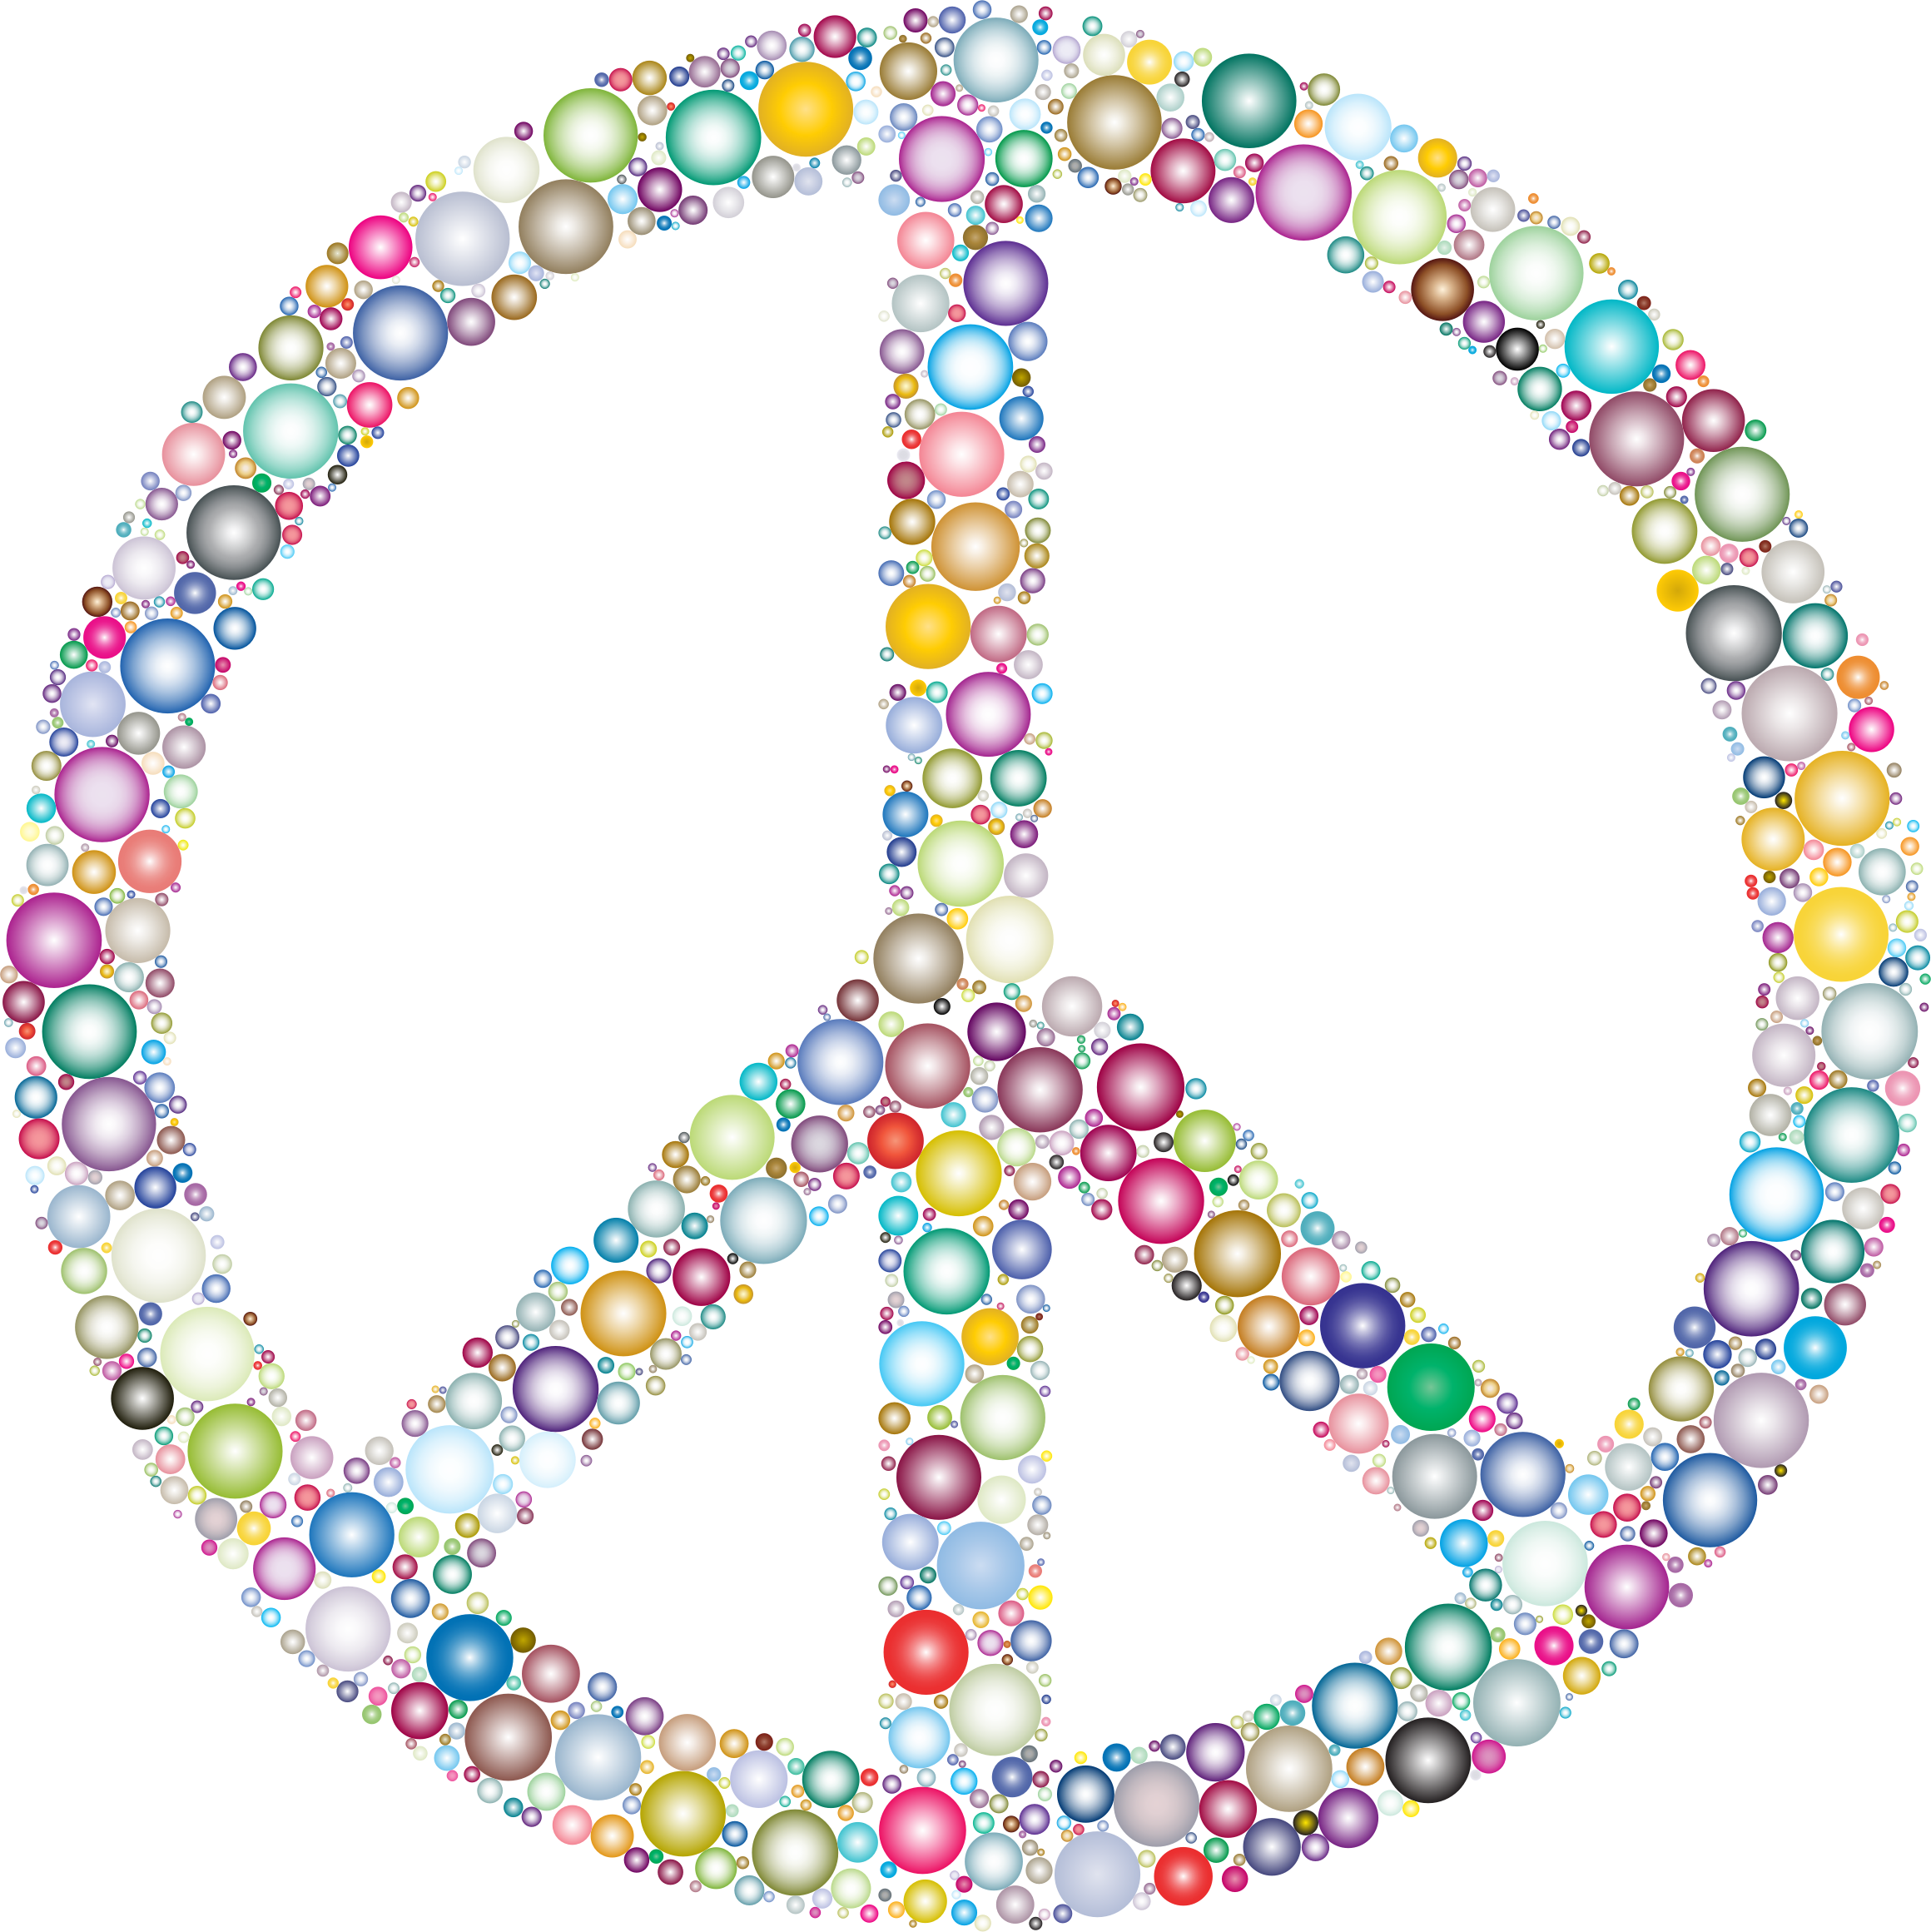 Colorful Circles Peace Sign 4 by GDJ